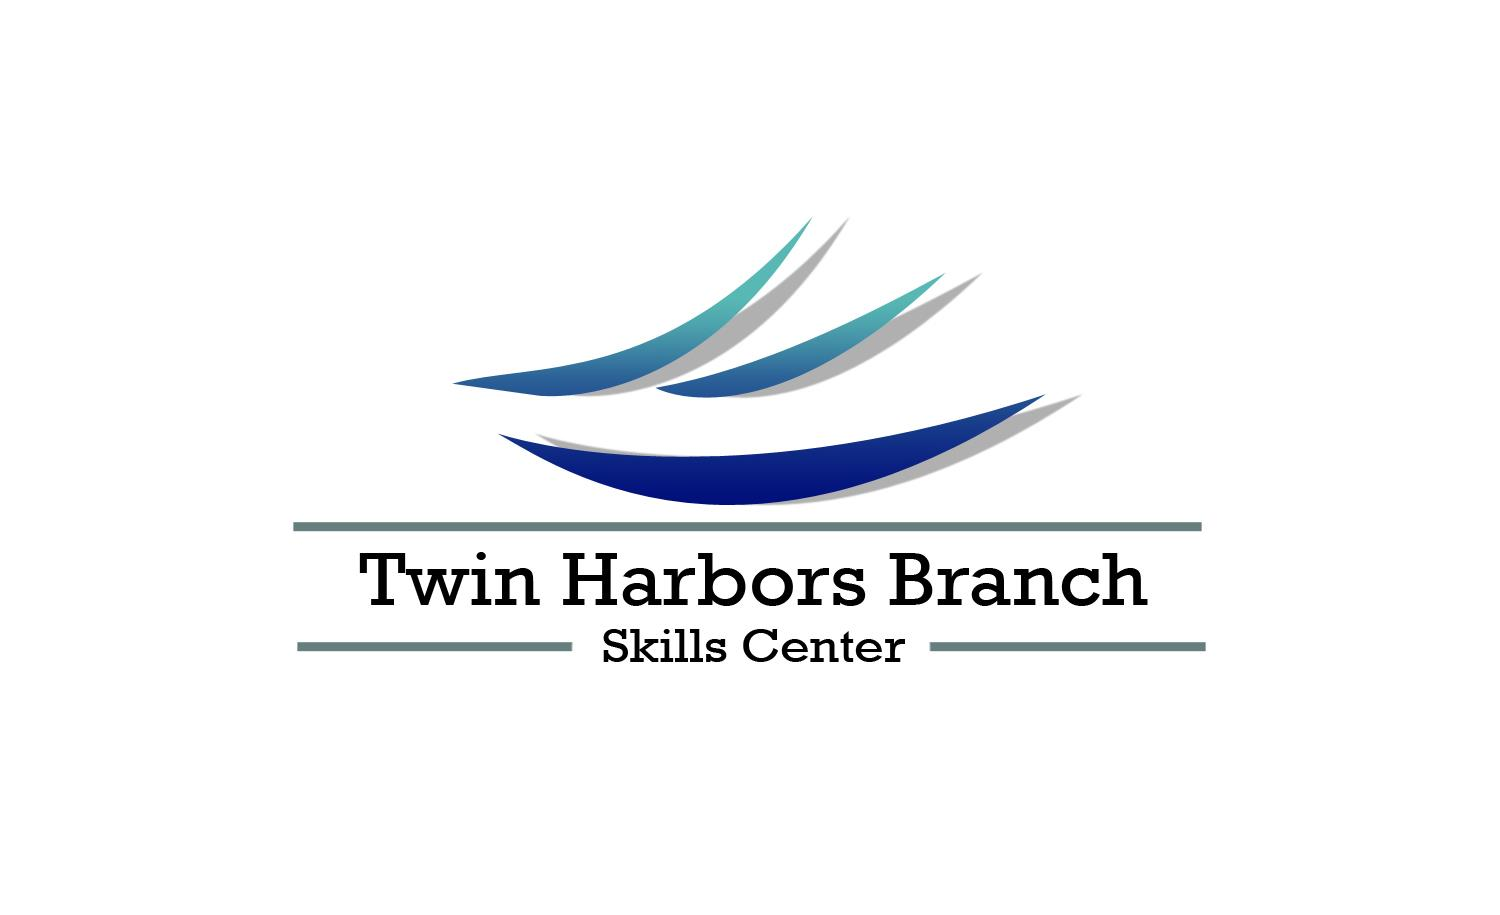 Twin Harbors Skill Center / Homepage